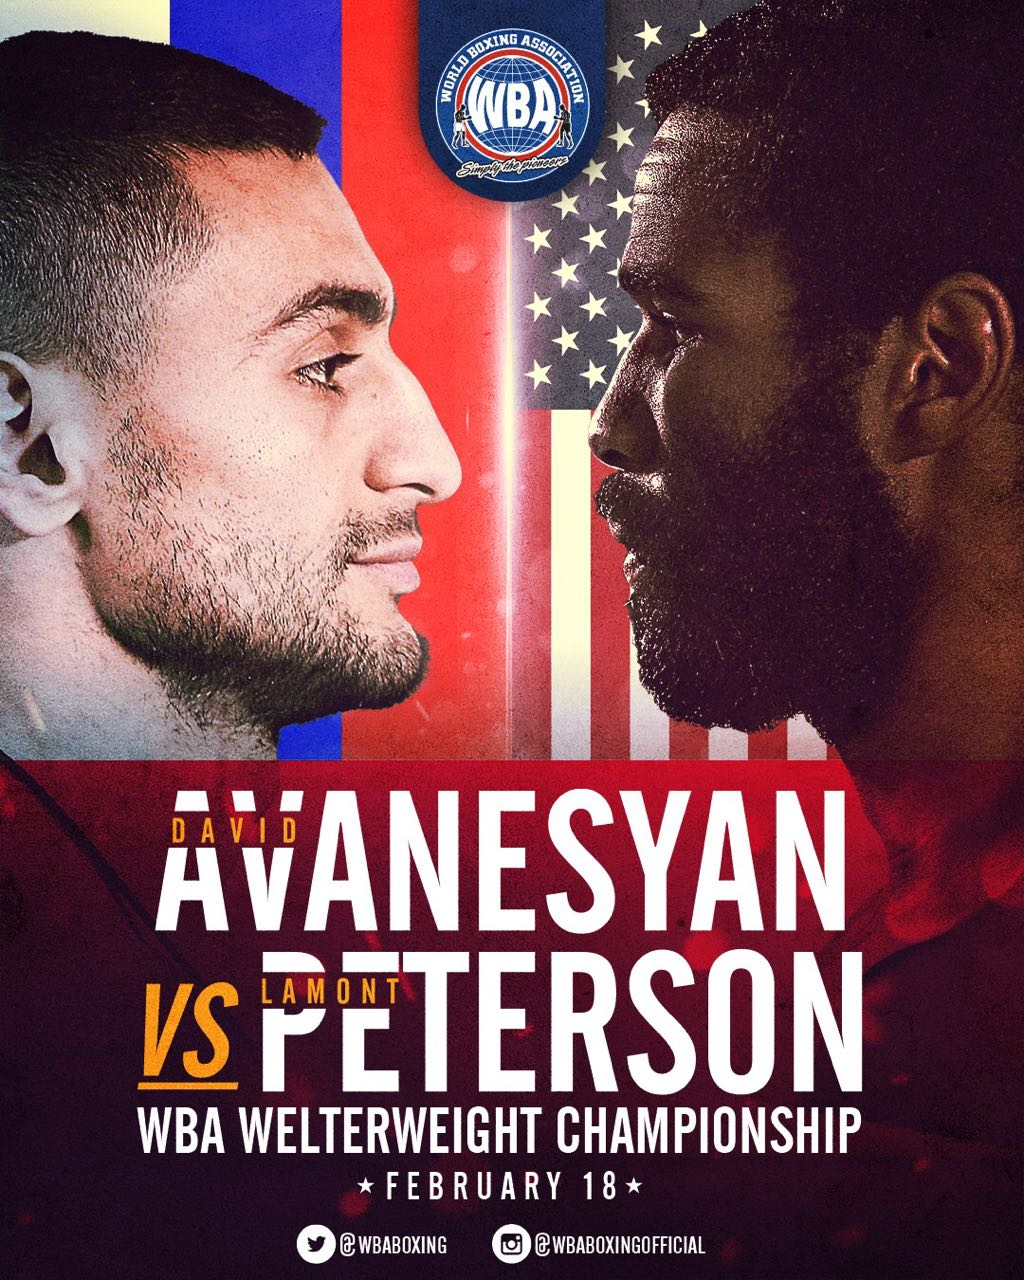 Preview: David Avanesyan vs. Lamont Peterson